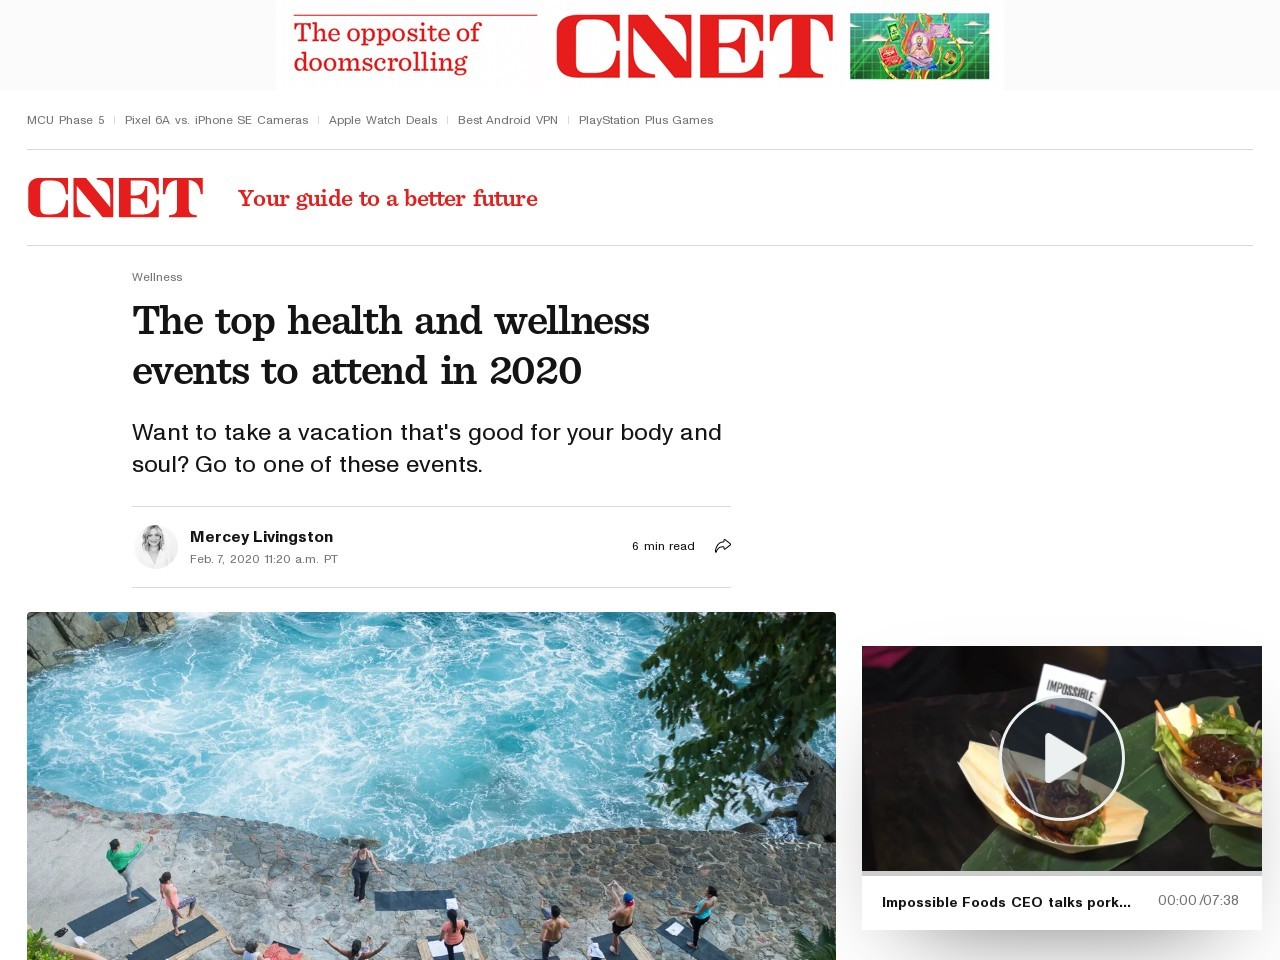 The top health and wellness events to attend in 2020